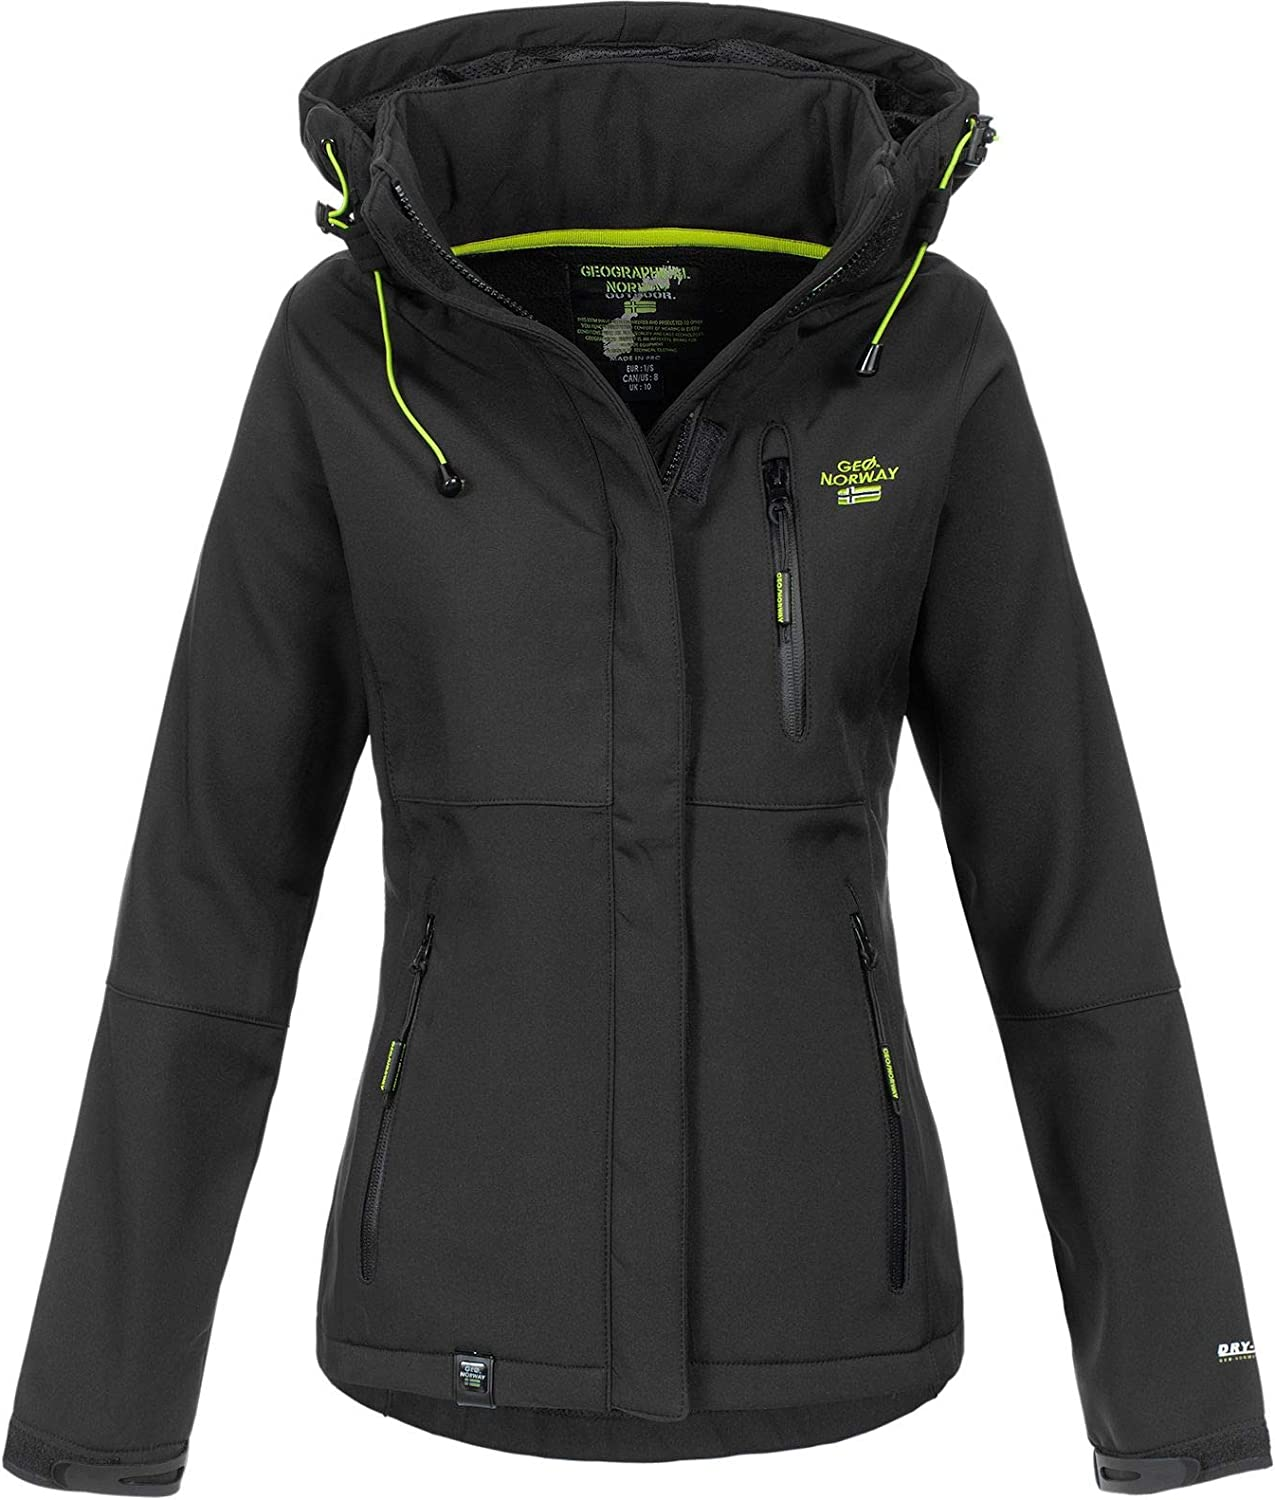 Geographical Norway Chaqueta para Mujer